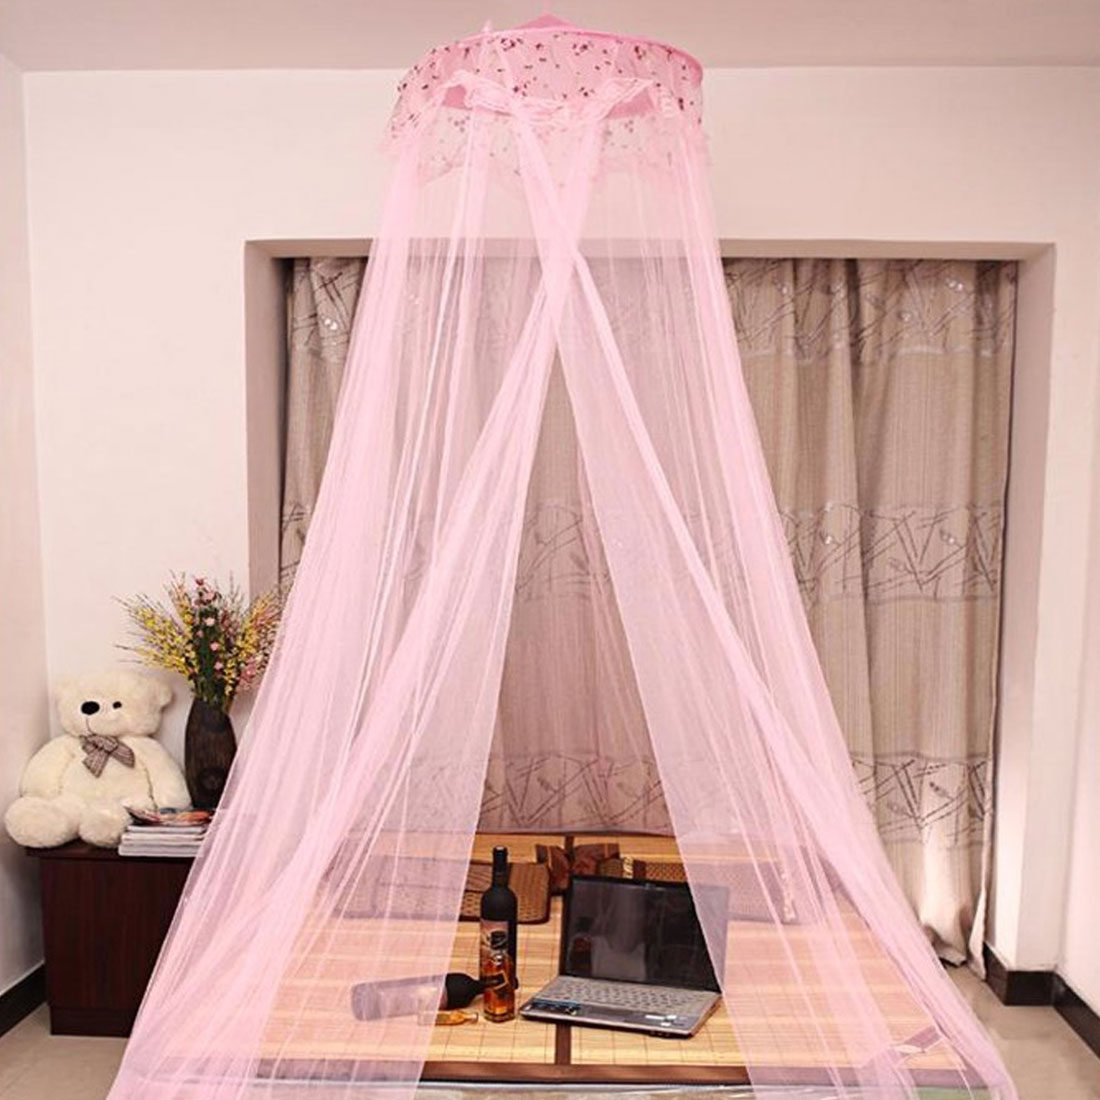 Home Bedroom Lacework Decor Round Top Hanging Kit Mesh Bedding Mosquito Net Canopy Pink 260 x 60cm